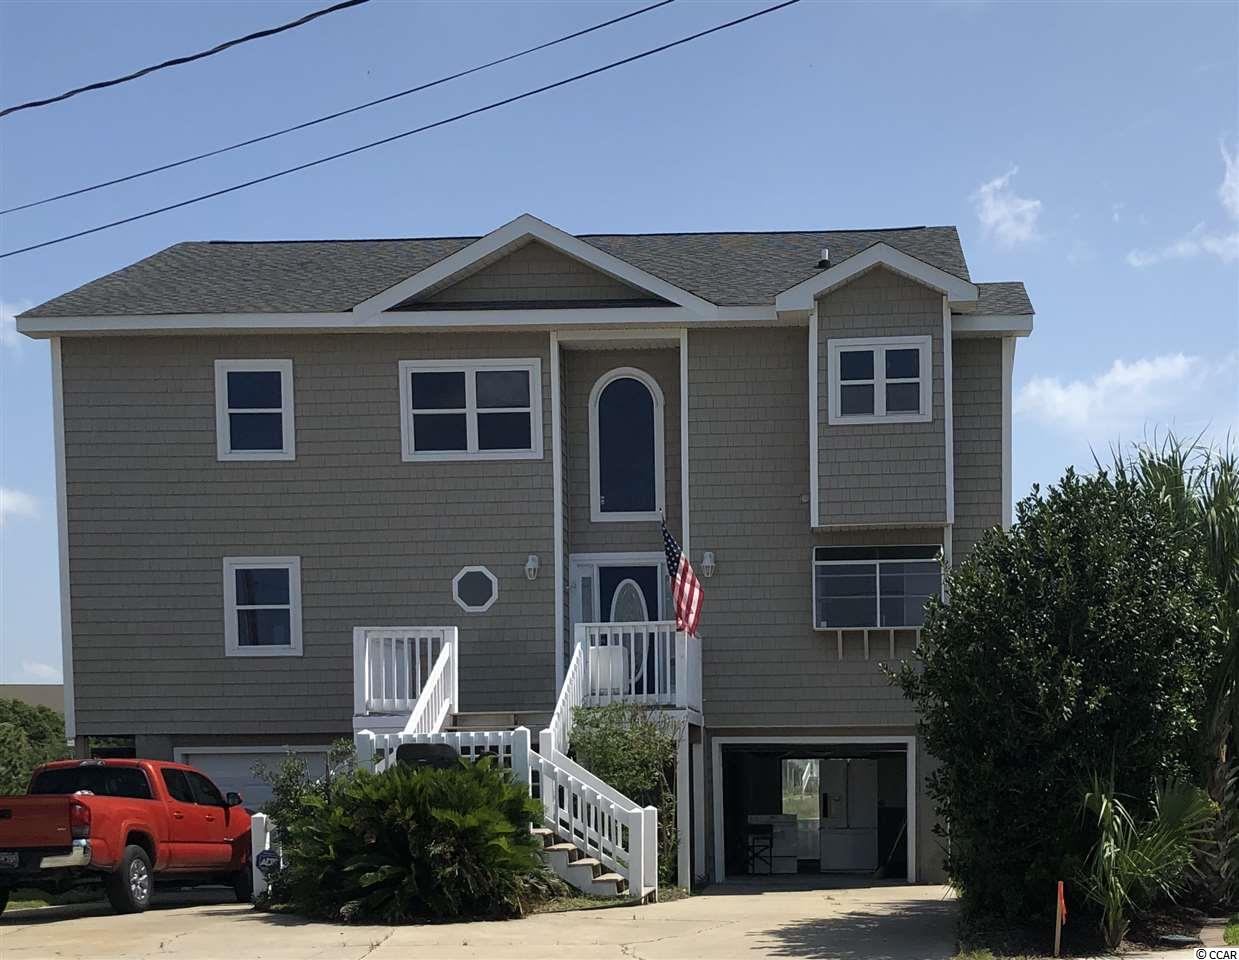 BRING YOUR BIG BOAT TO THIS HOME LOCATED ON A CHANNEL GOING DIRECTLY TO THE OCEAN. SELLER HAS  HAD A NEW SEAWALL BUILT WITH IN THE LAST YEAR , OVER 100 FT.  IT HAS A FLOATING DOCK.  BEAUTIFUL VIEWS,  HOUSE HAS RECENTLY HAD MOST OF INTERIOR PAINTED. NEW STAINLESS APPLIANCES . NEW DECK ALL THE WAY ACROSS THE BACK . LOTS OF ROOM FOR ENTERTAINING.  YOU REALLY NEED TO SEE TO APPRECIATE.